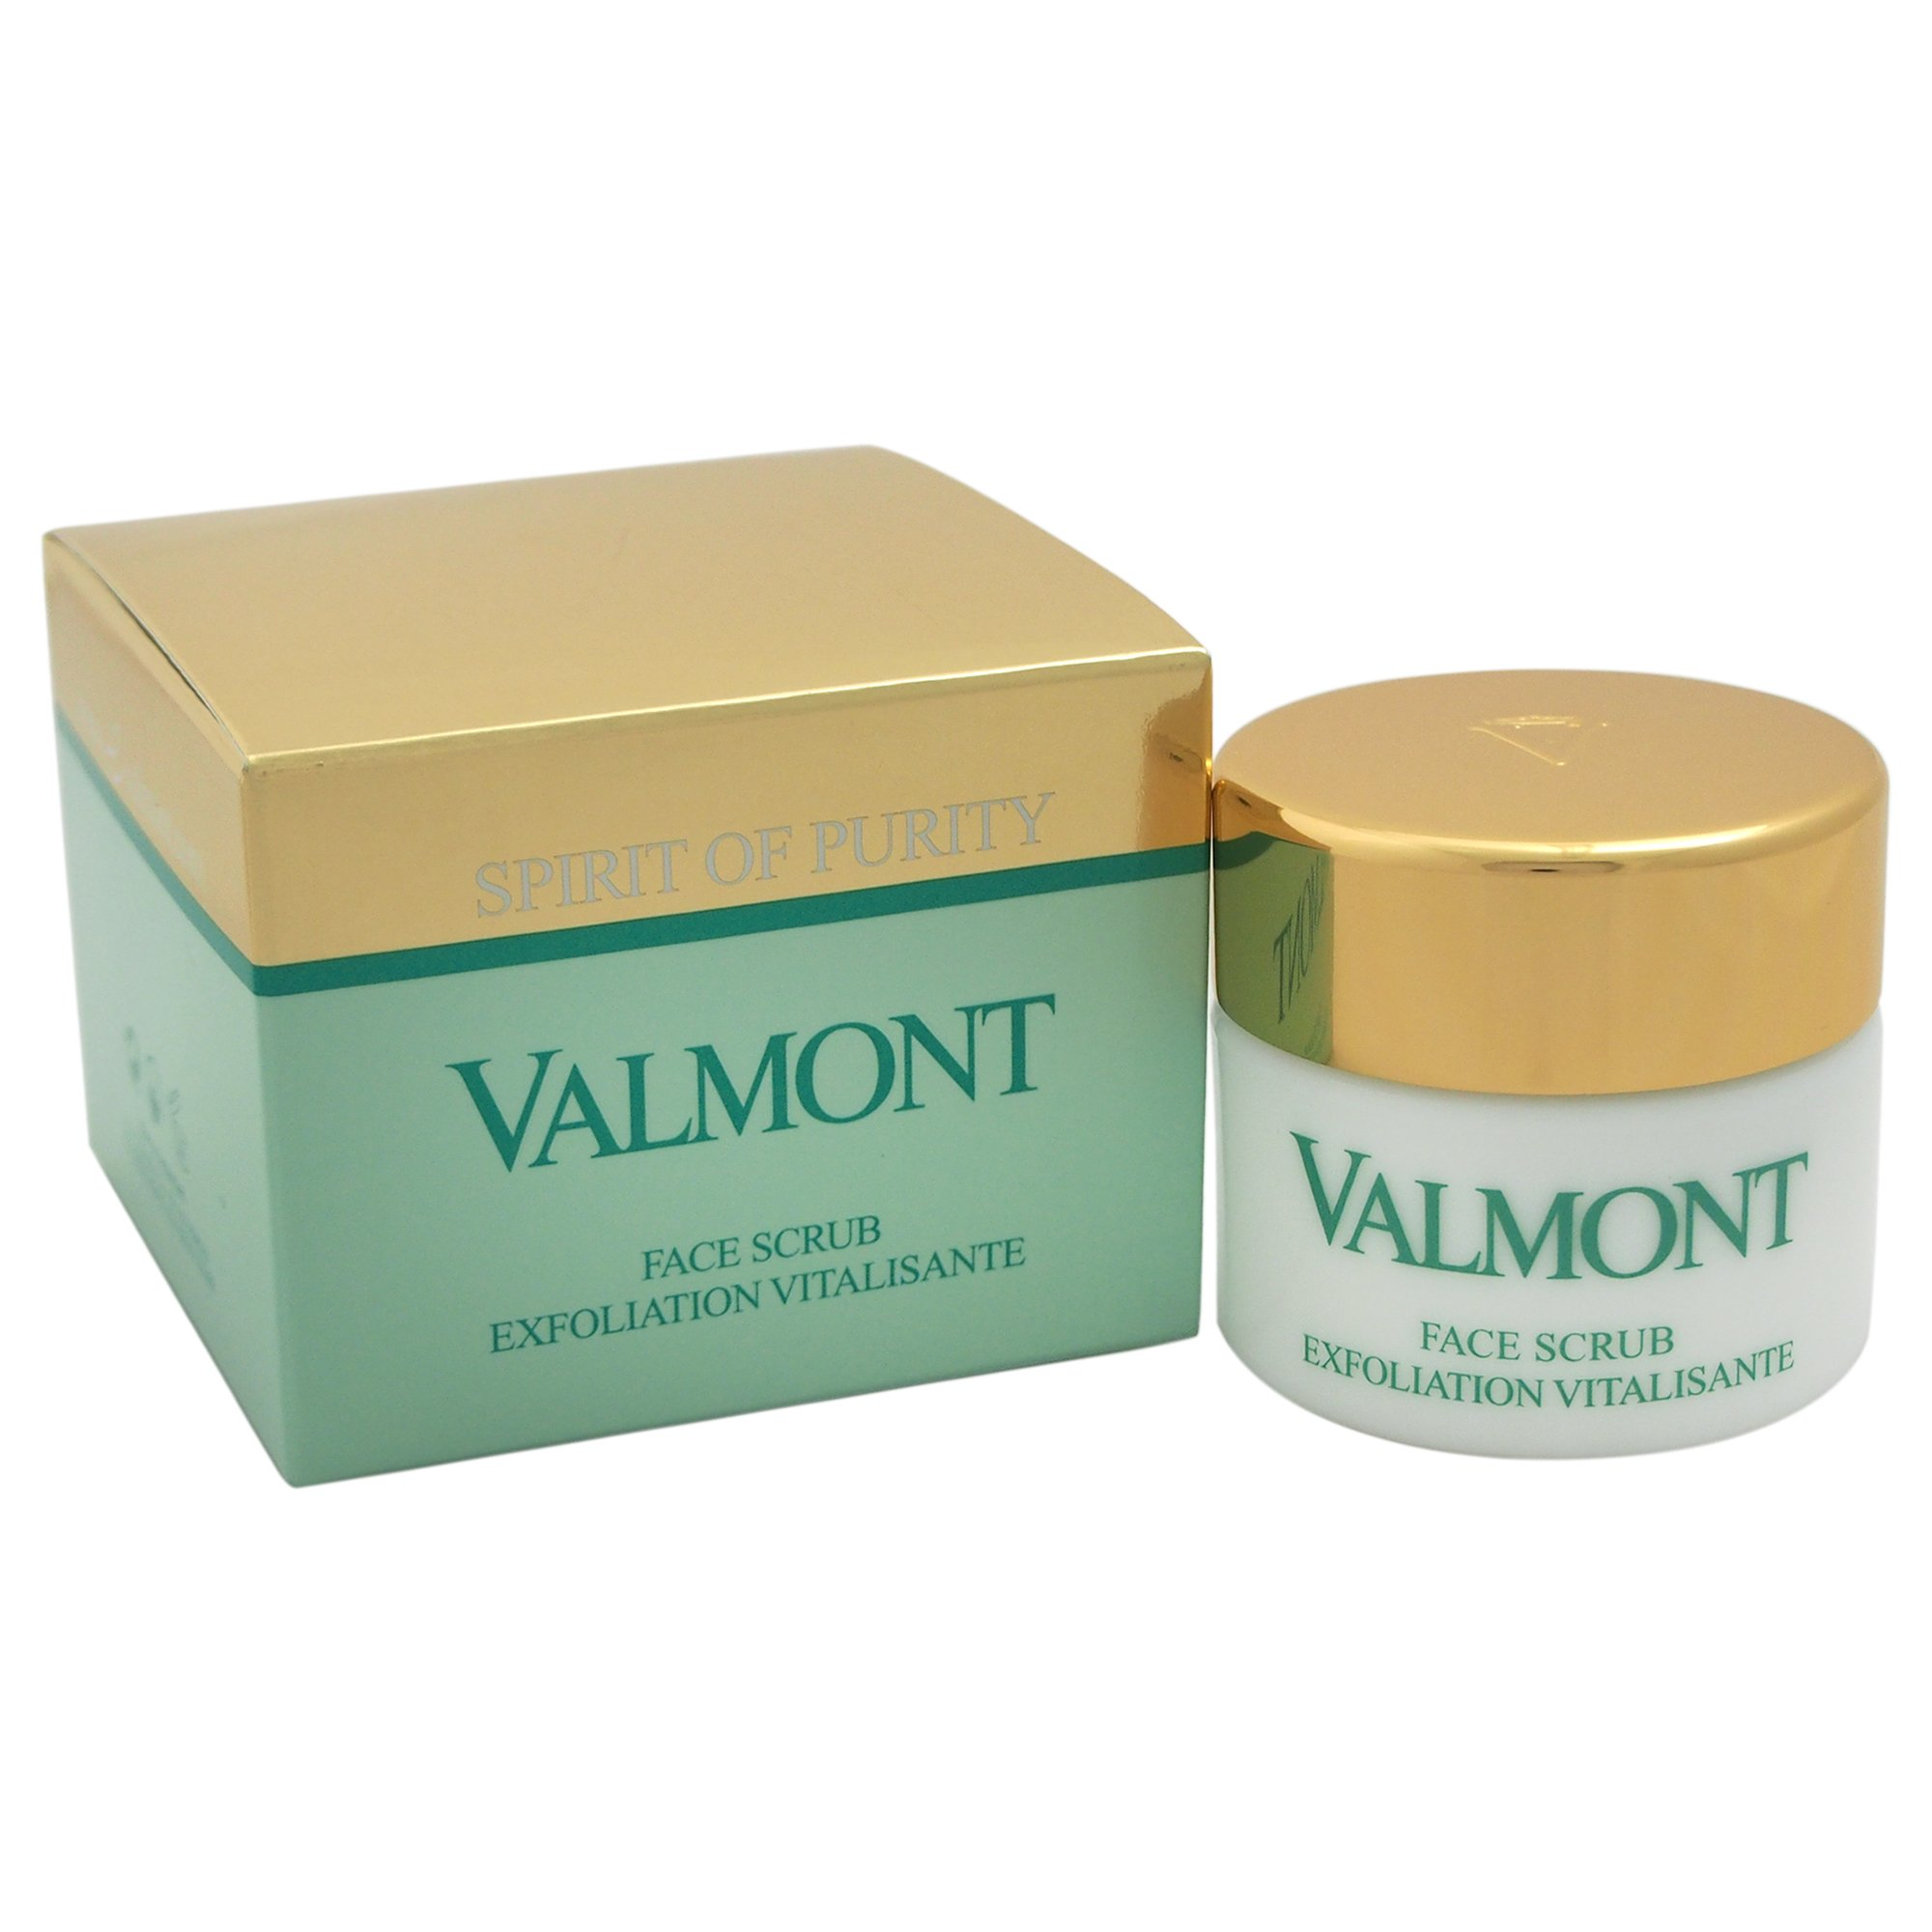 Valmont Purification Ritual Face Scrub, 1.7 Fluid Ounce by Valmont